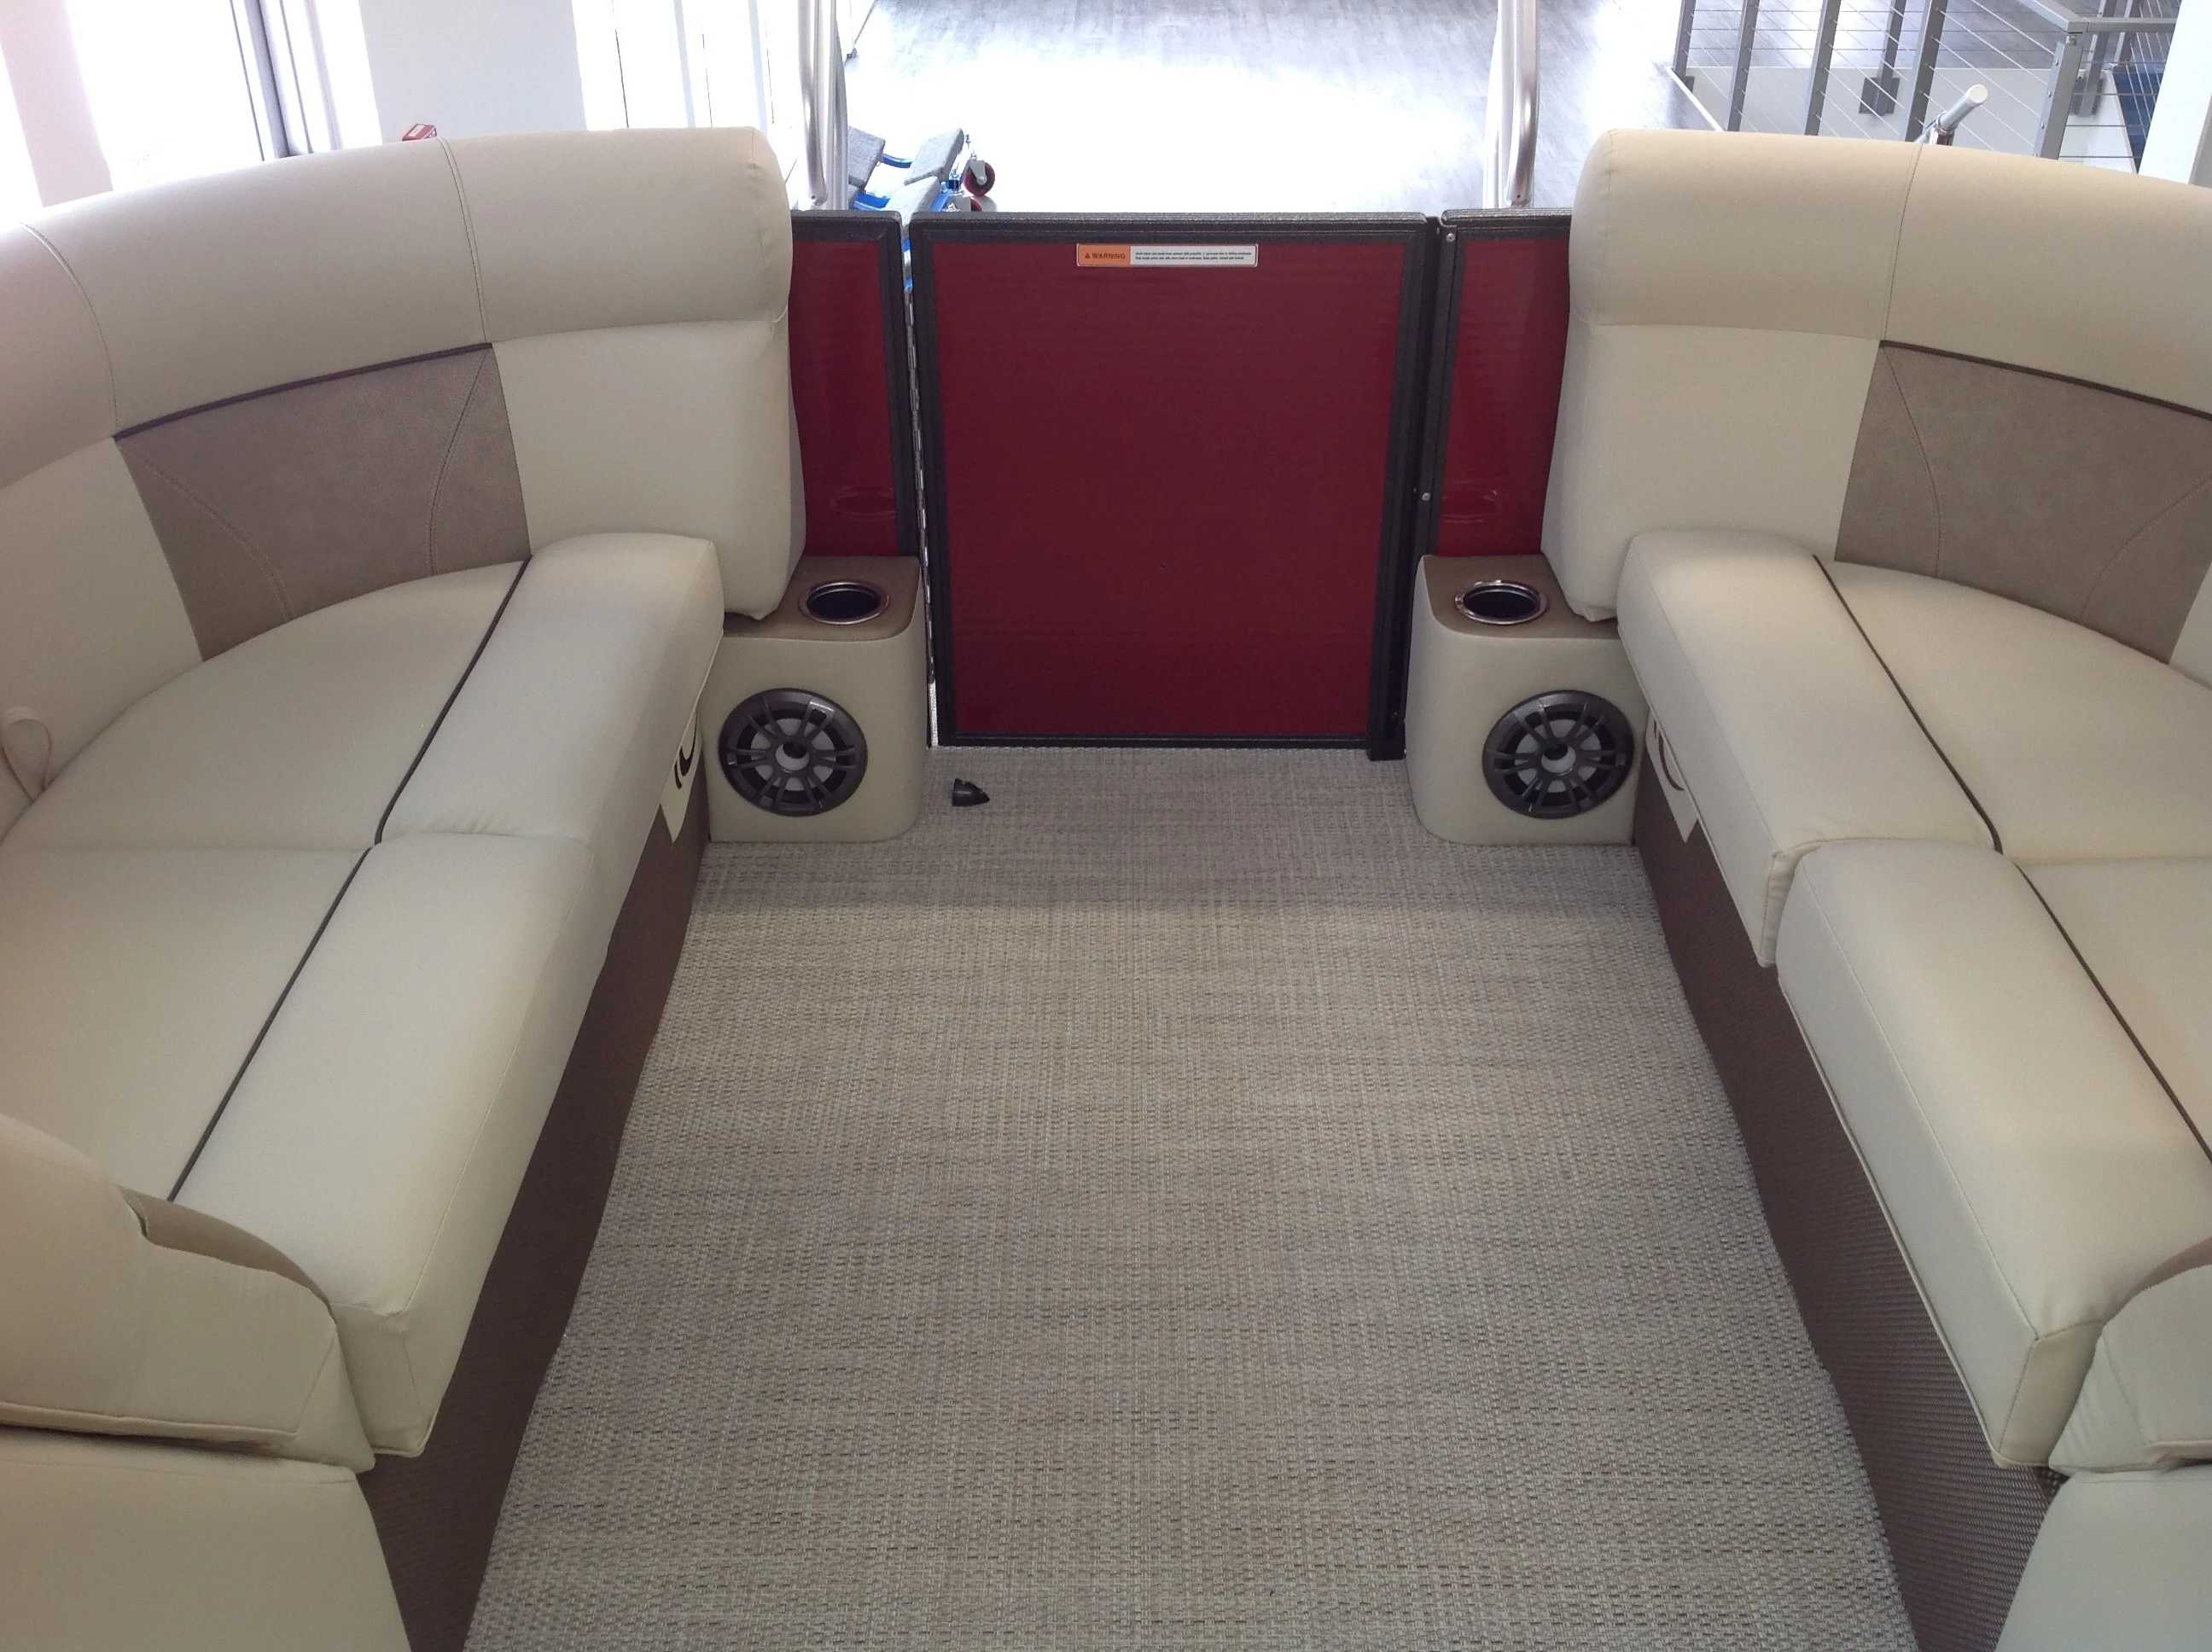 2021 Crest boat for sale, model of the boat is Cl Dlx 220slc & Image # 12 of 15